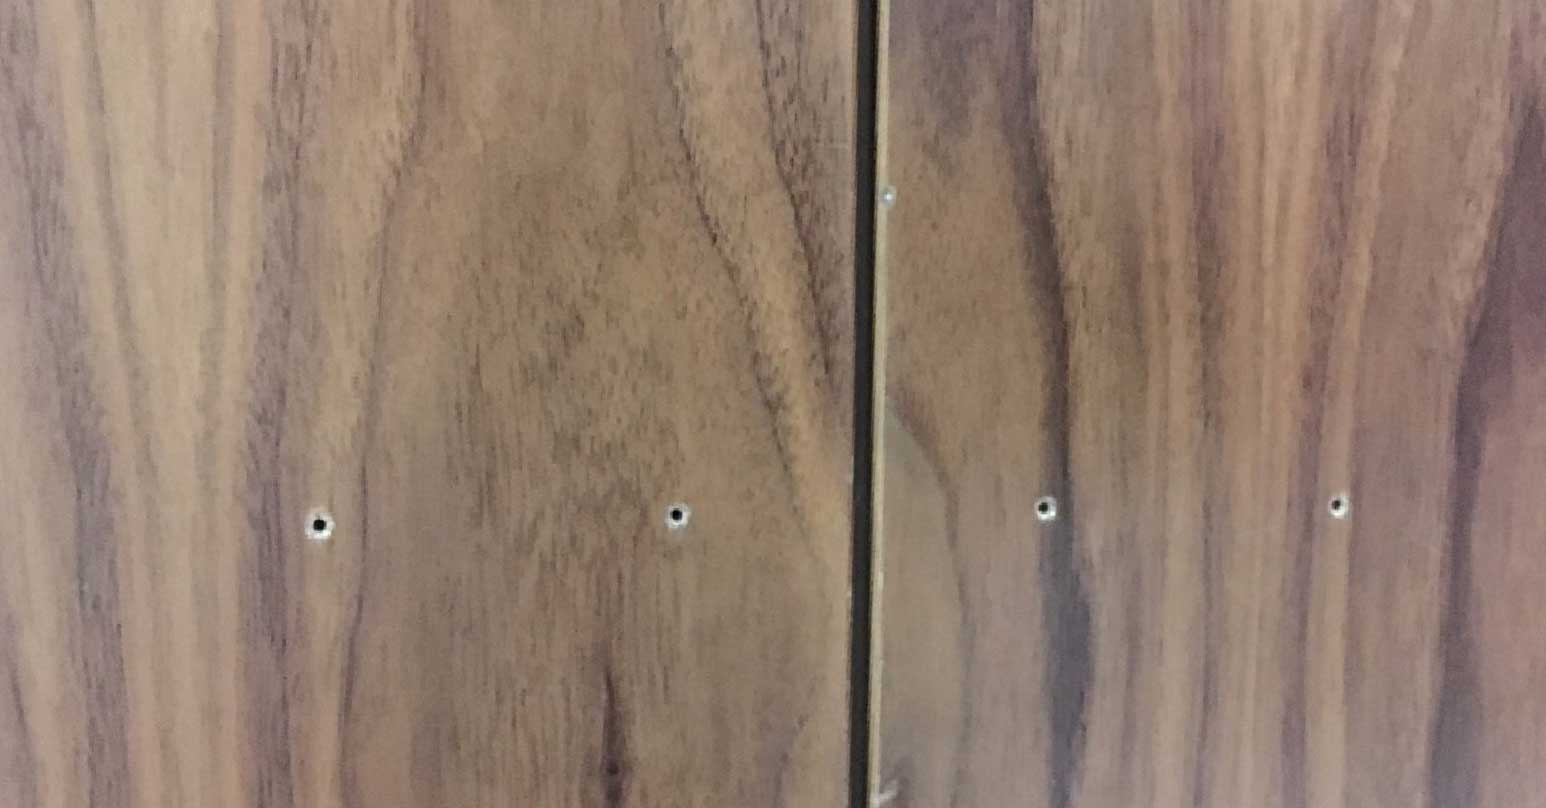 Holes in laminate door